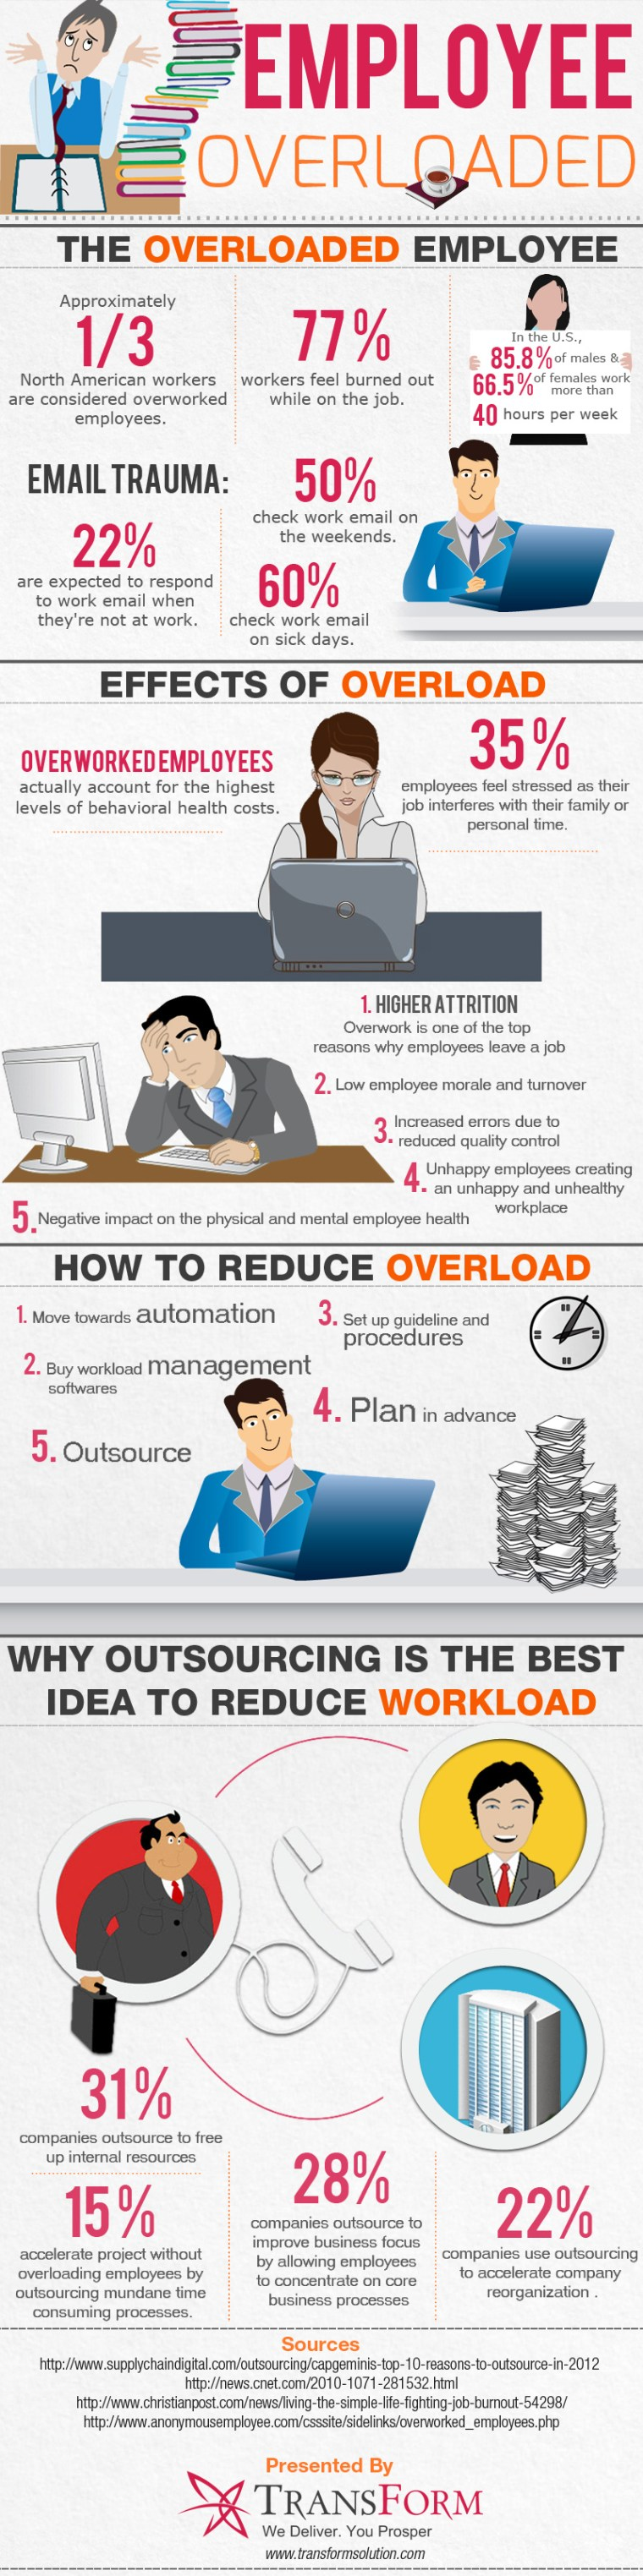 outsourcing-best-solution-to-reduce-employee-overload-infographic_52ff4bcd58889